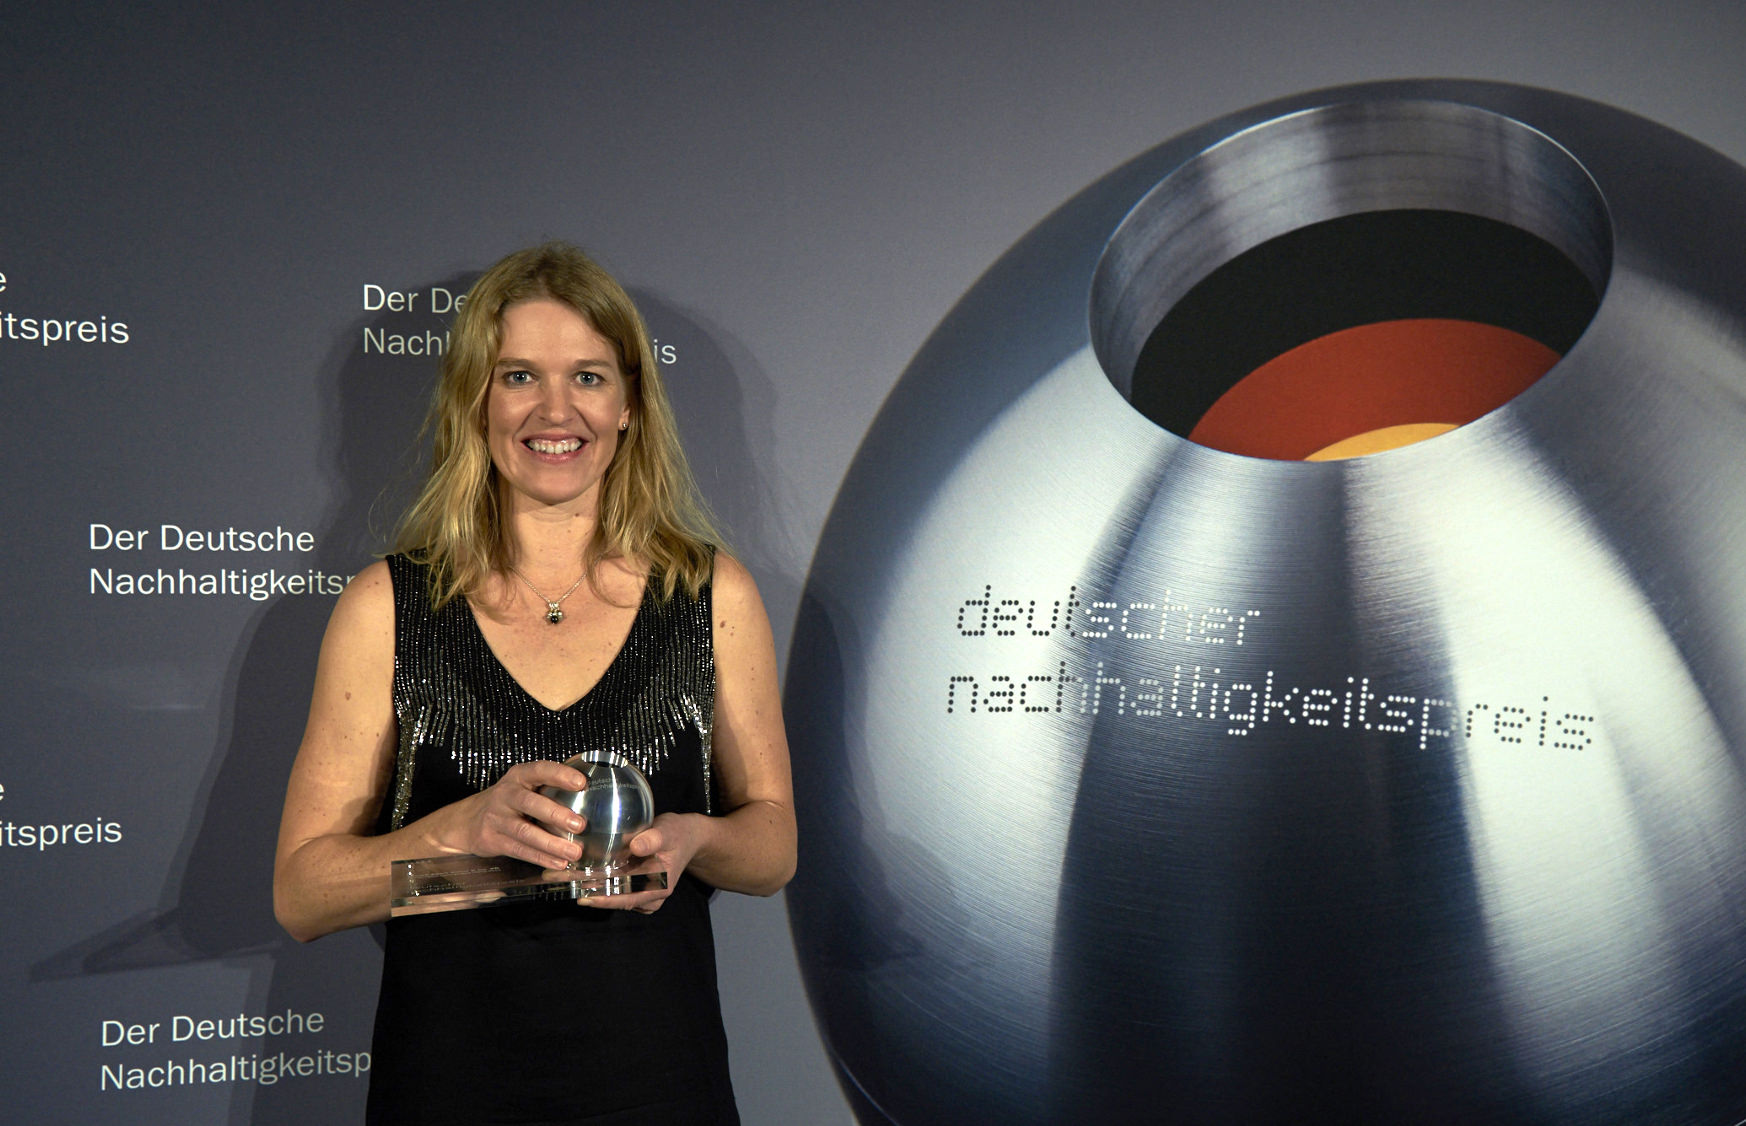 Antje von Dewitz with the German Sustainability Award 2015 - Photographer: Frank Fendler